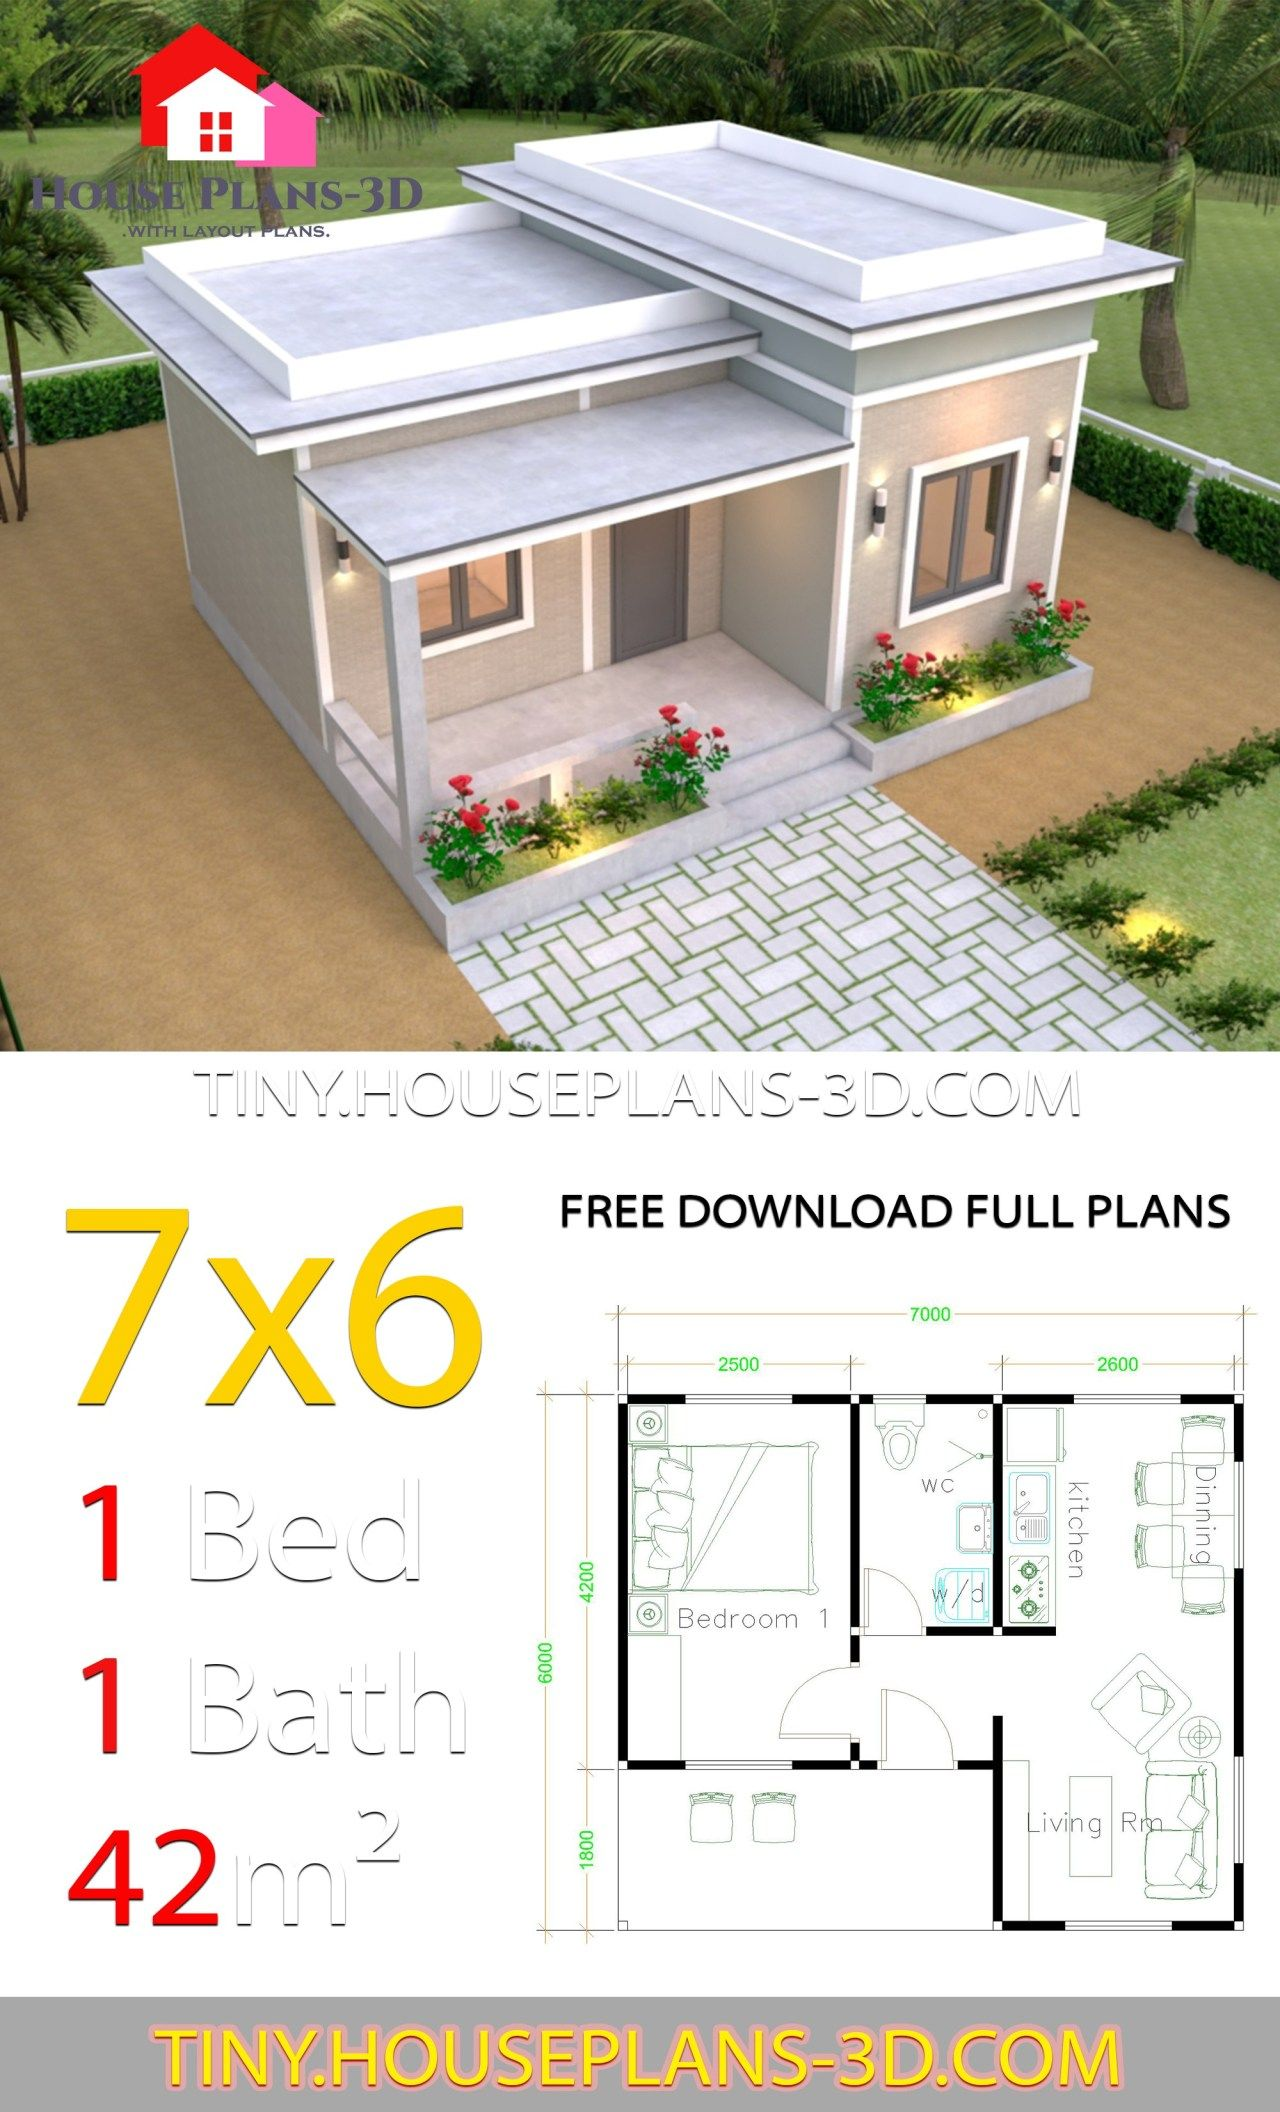 7x6 With One Bedroom Flat Roof In 2020 Tiny House Layout Small